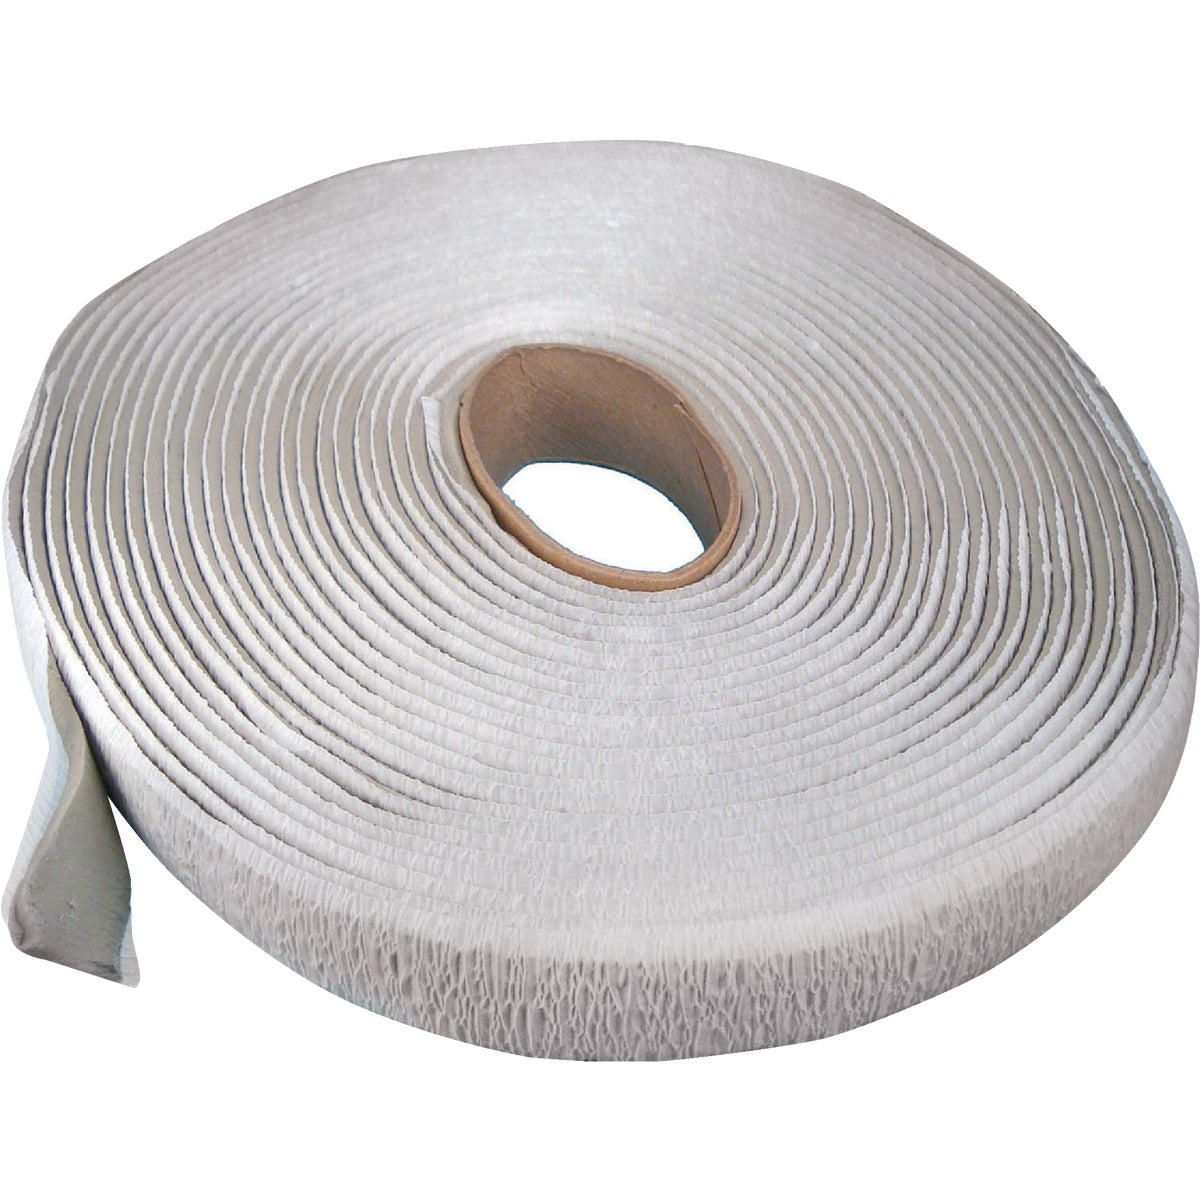 GRAY PUTTY TAPE